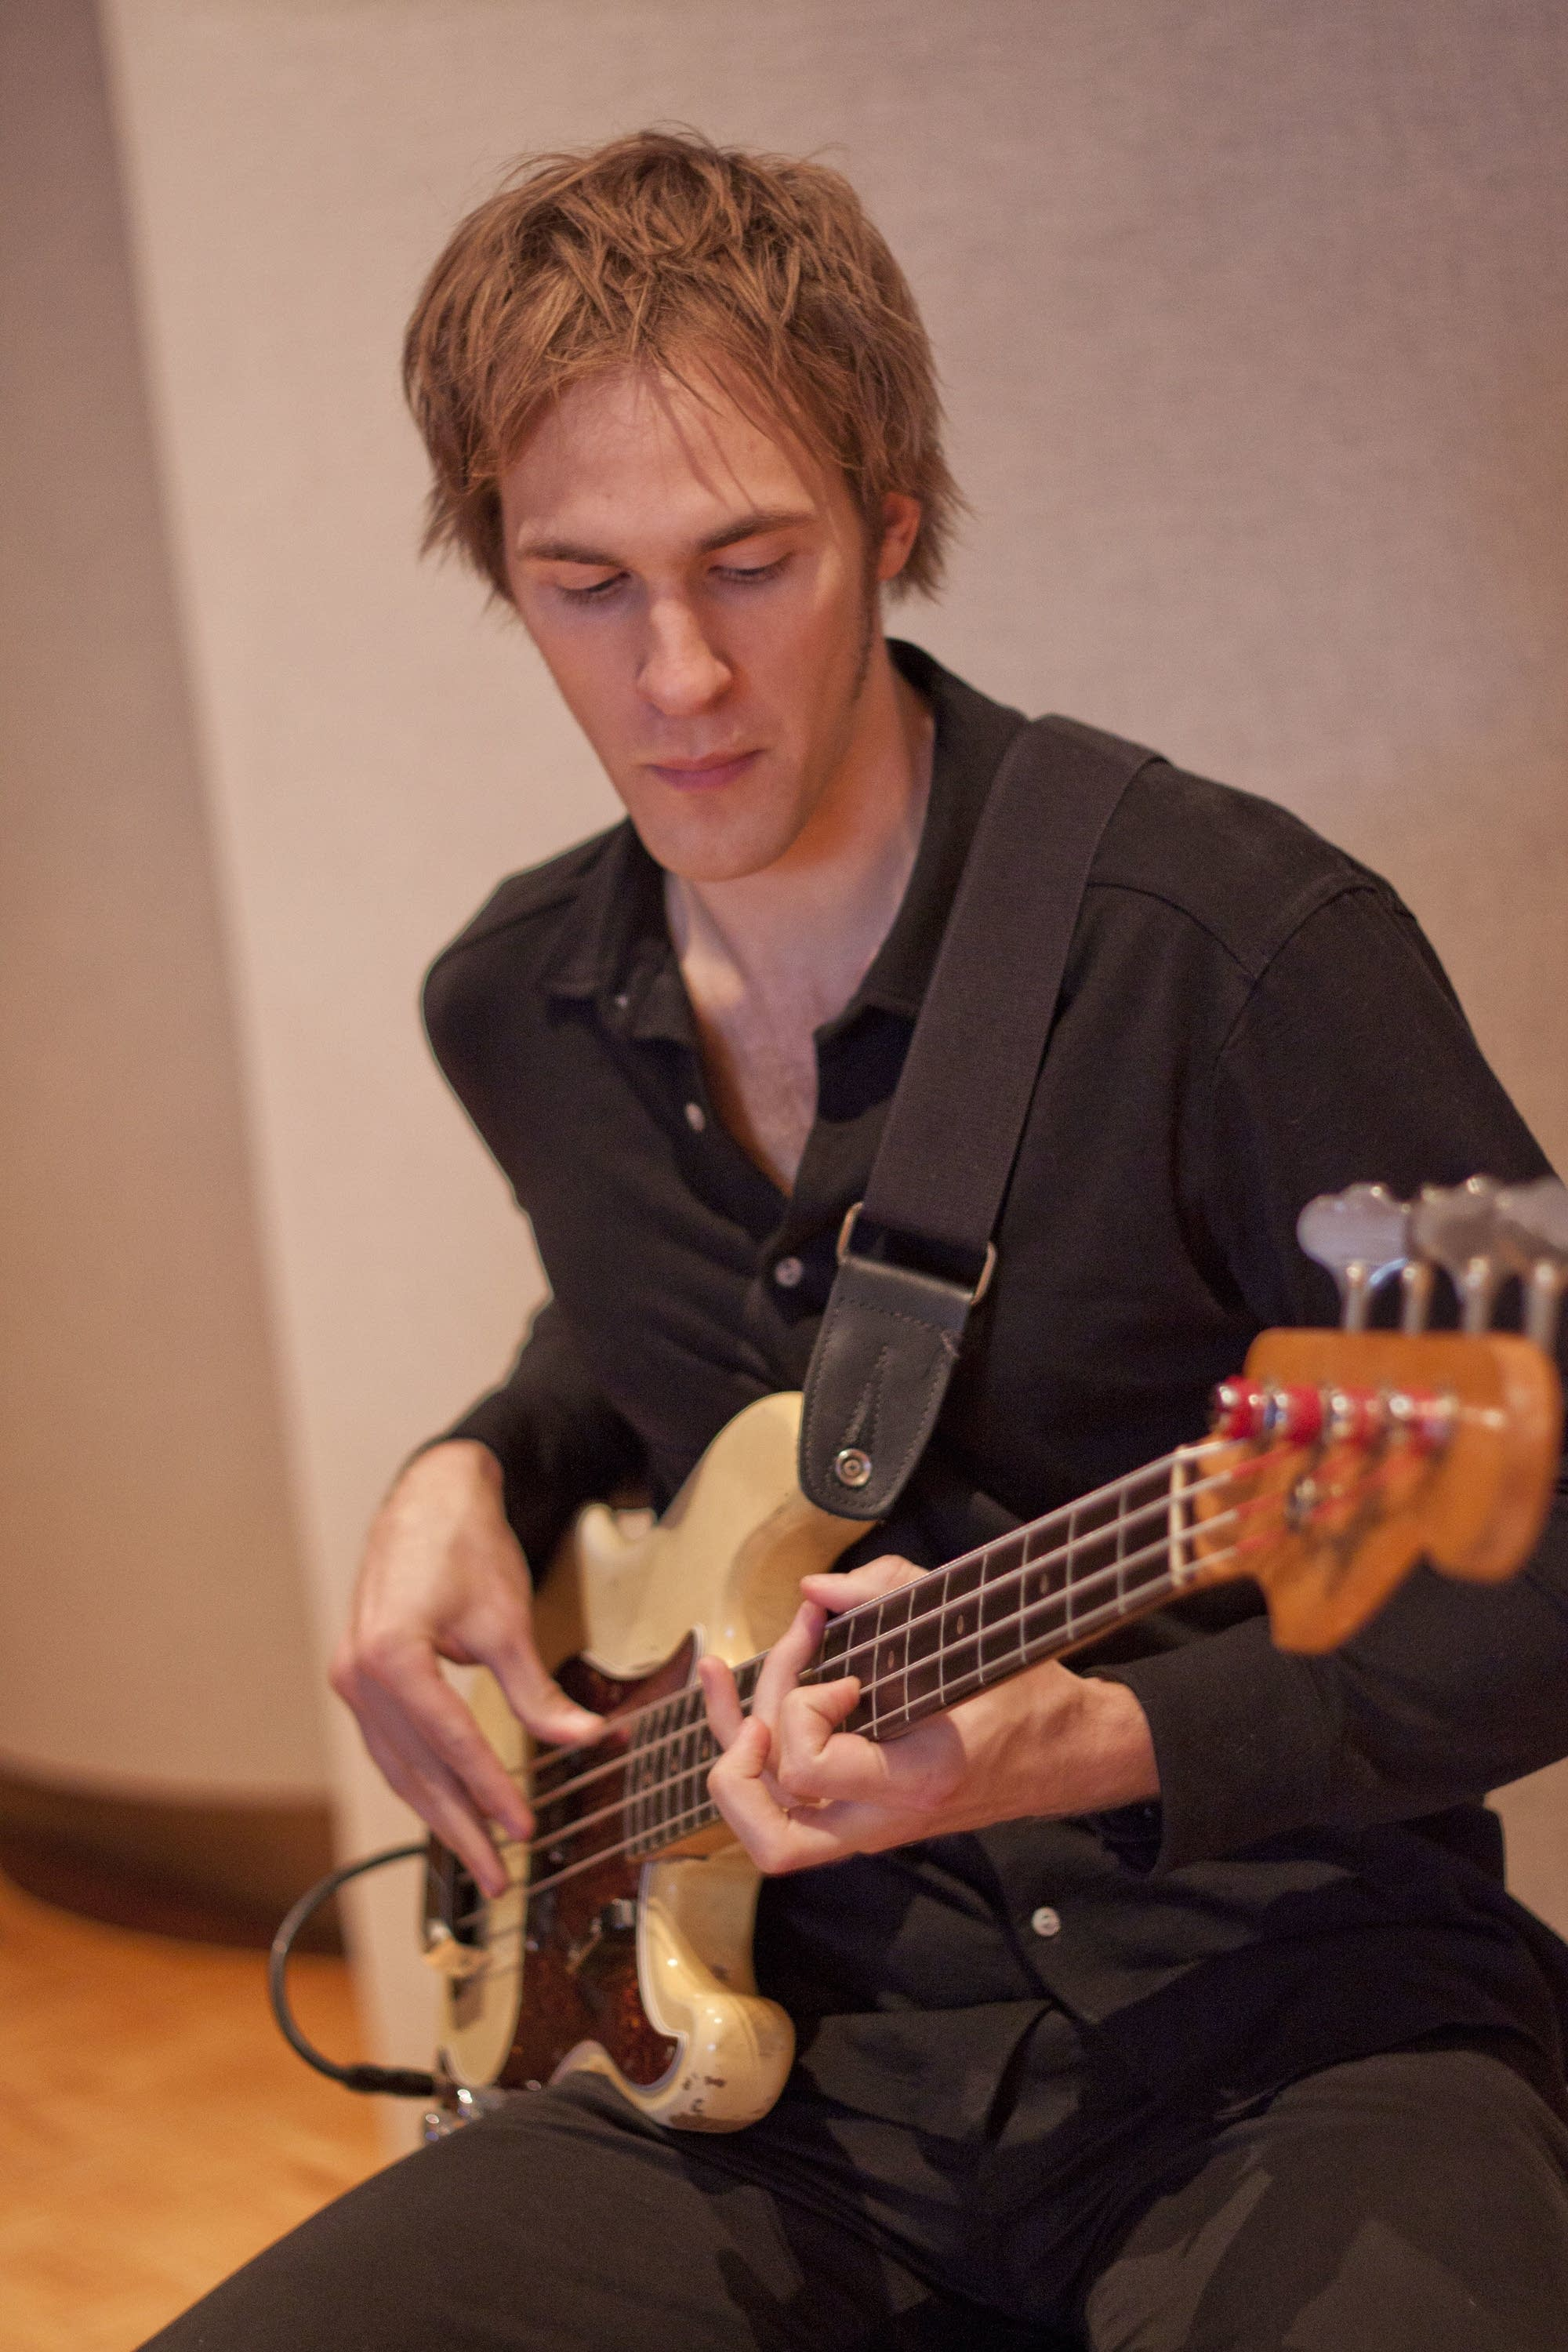 Bassist for Low Steve Garrington